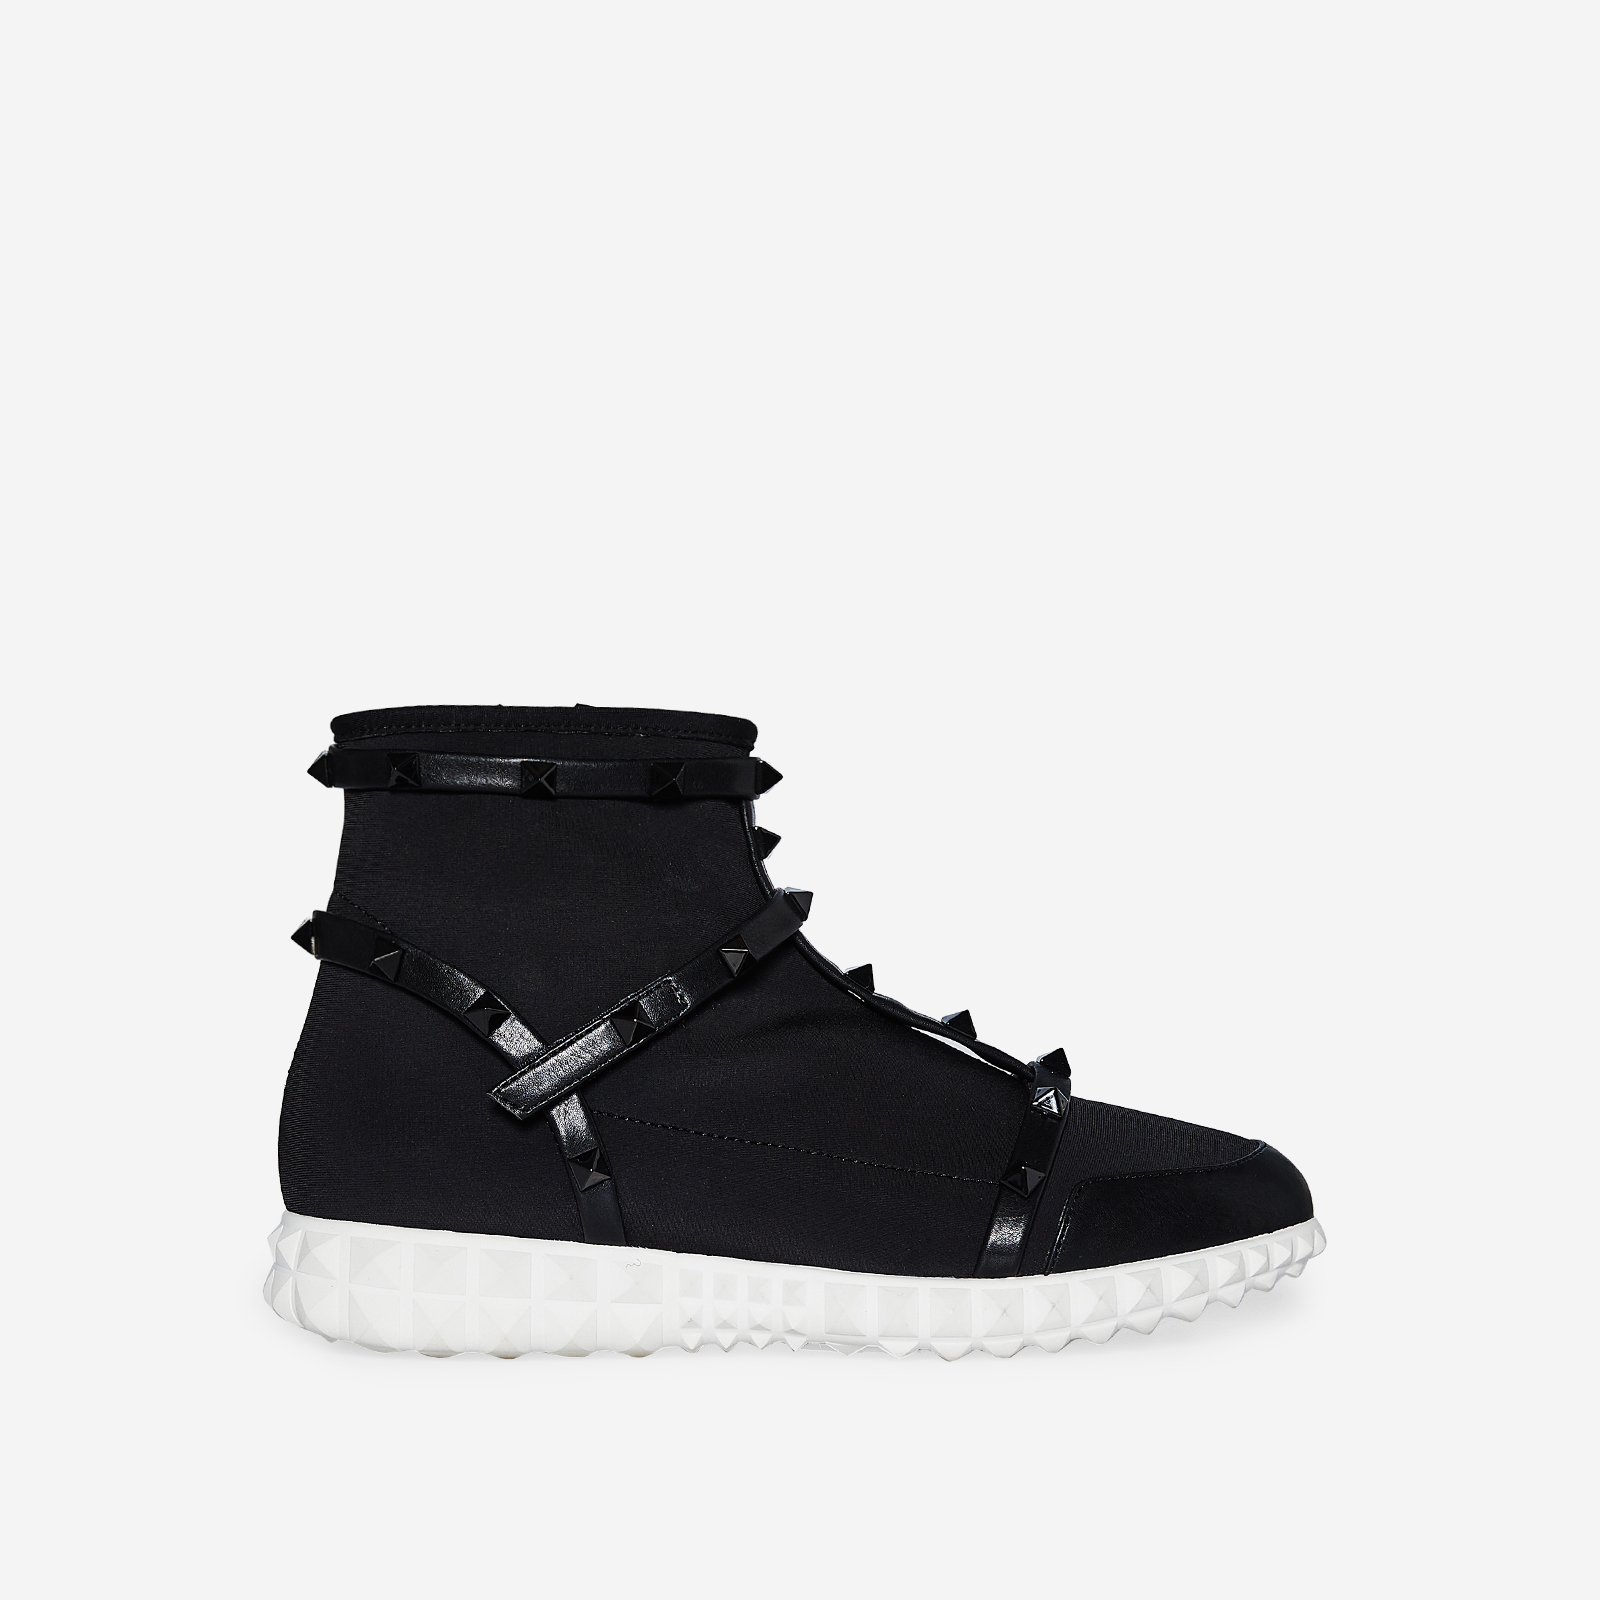 Rocha Studded Detail Trainer In Black Knit